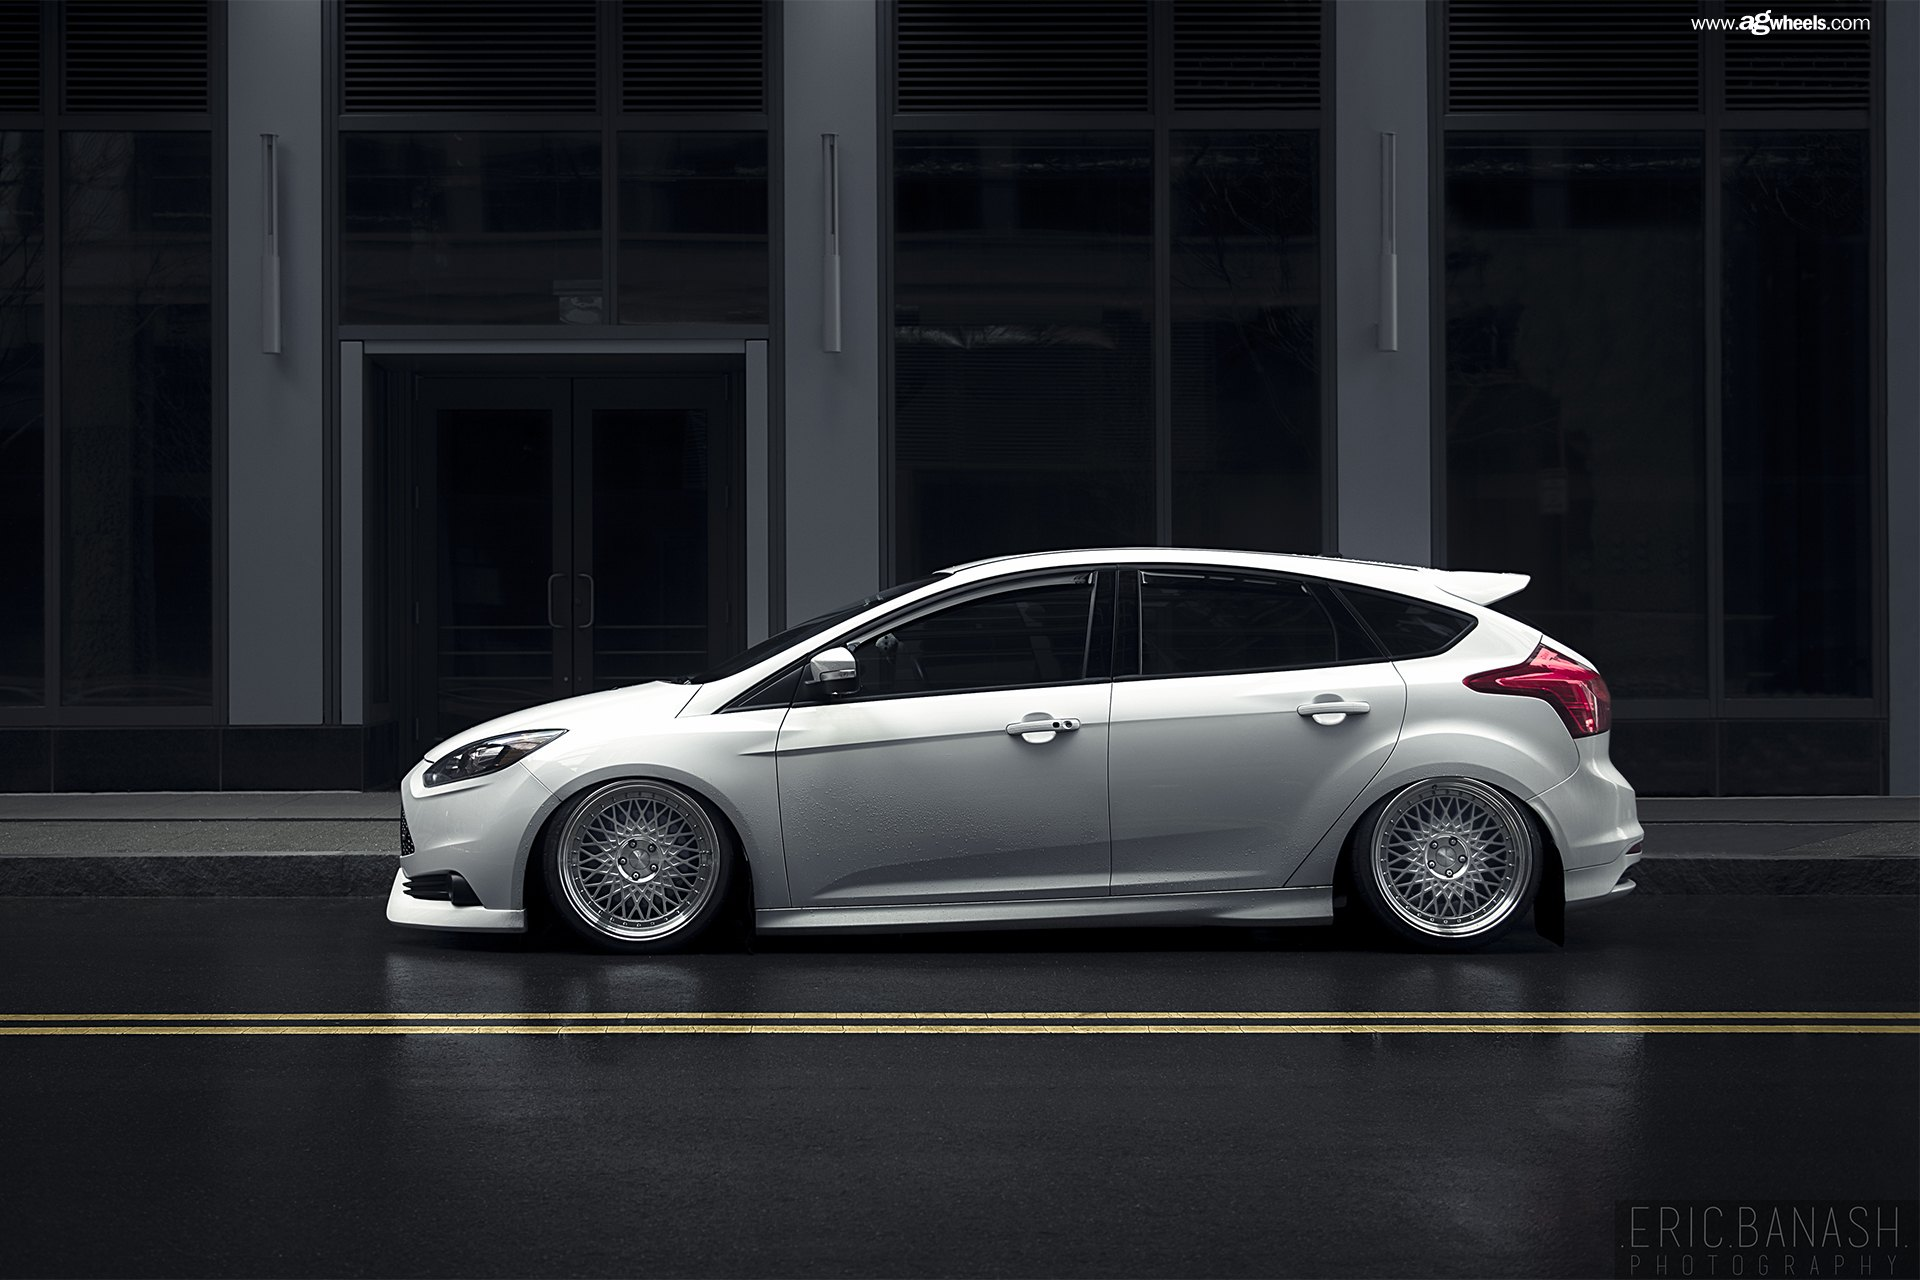 White Lowered Ford Focus Fitted With Aftermarket Goodies Carid Com